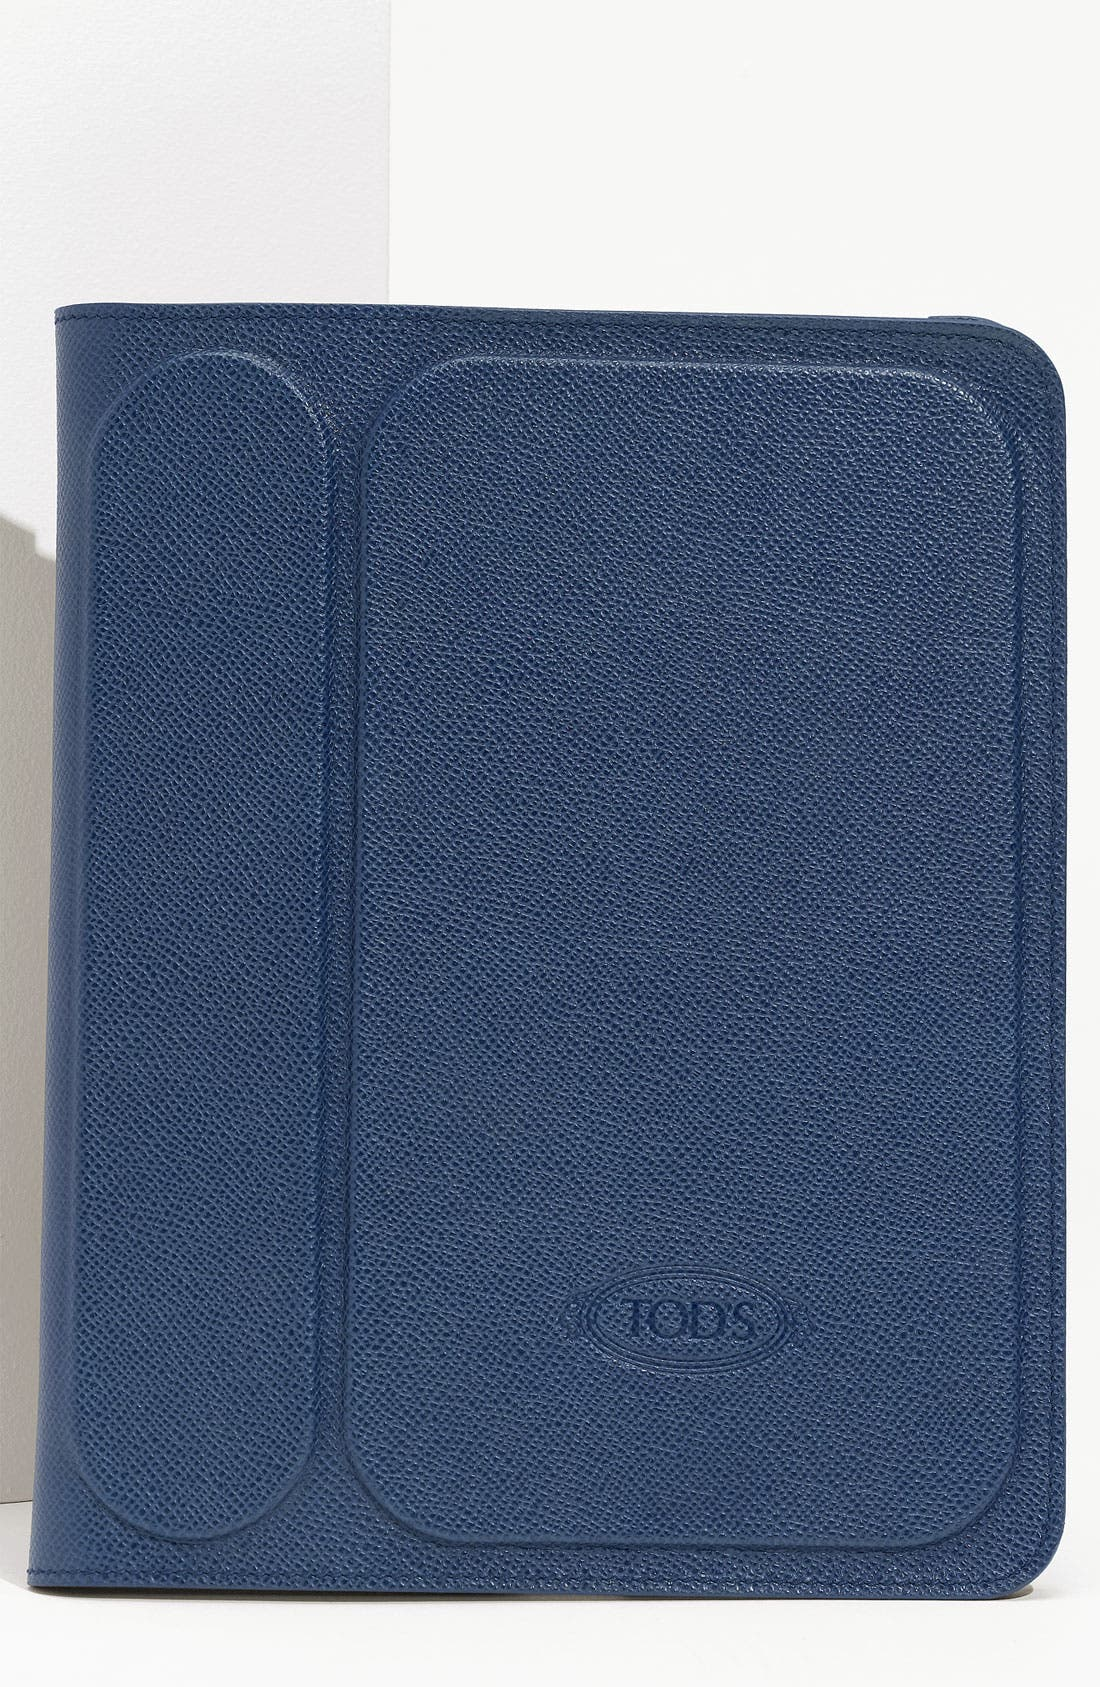 Alternate Image 1 Selected - Tod's Leather iPad Case